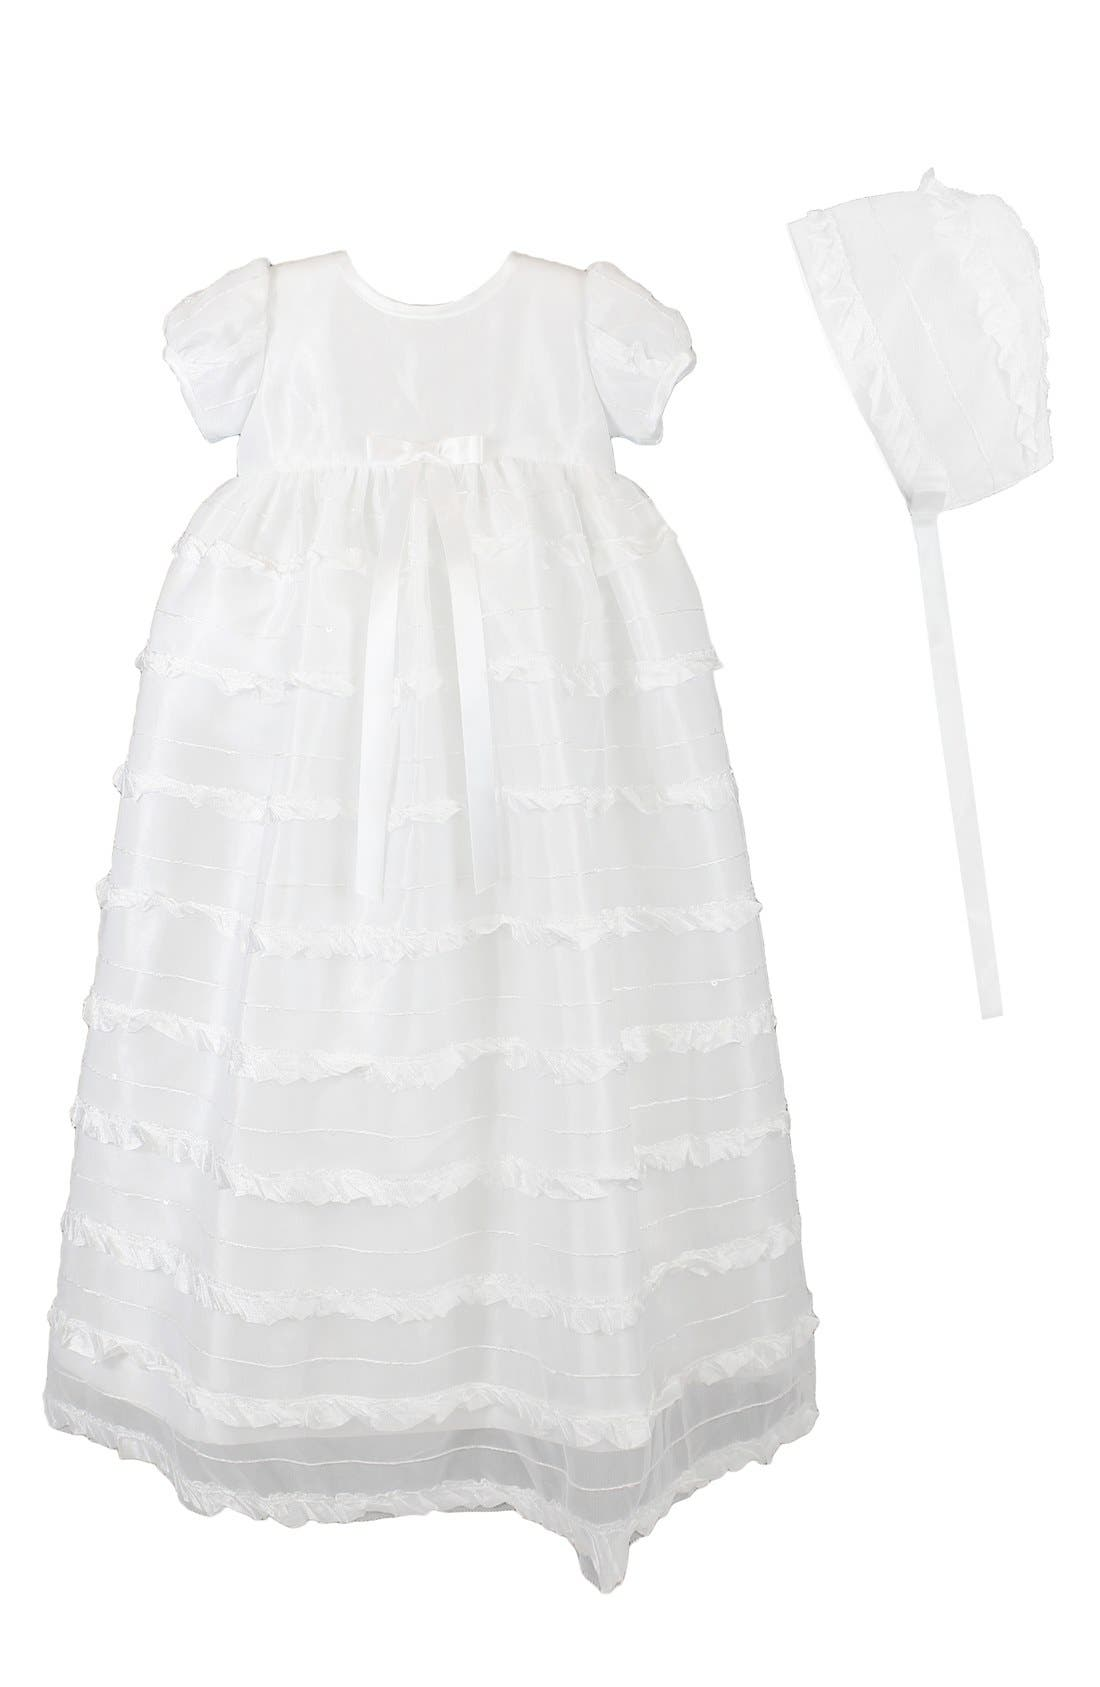 Main Image - C.I. Castro & Co 'Eyelash' Christening Gown & Bonnet (Baby Girls)